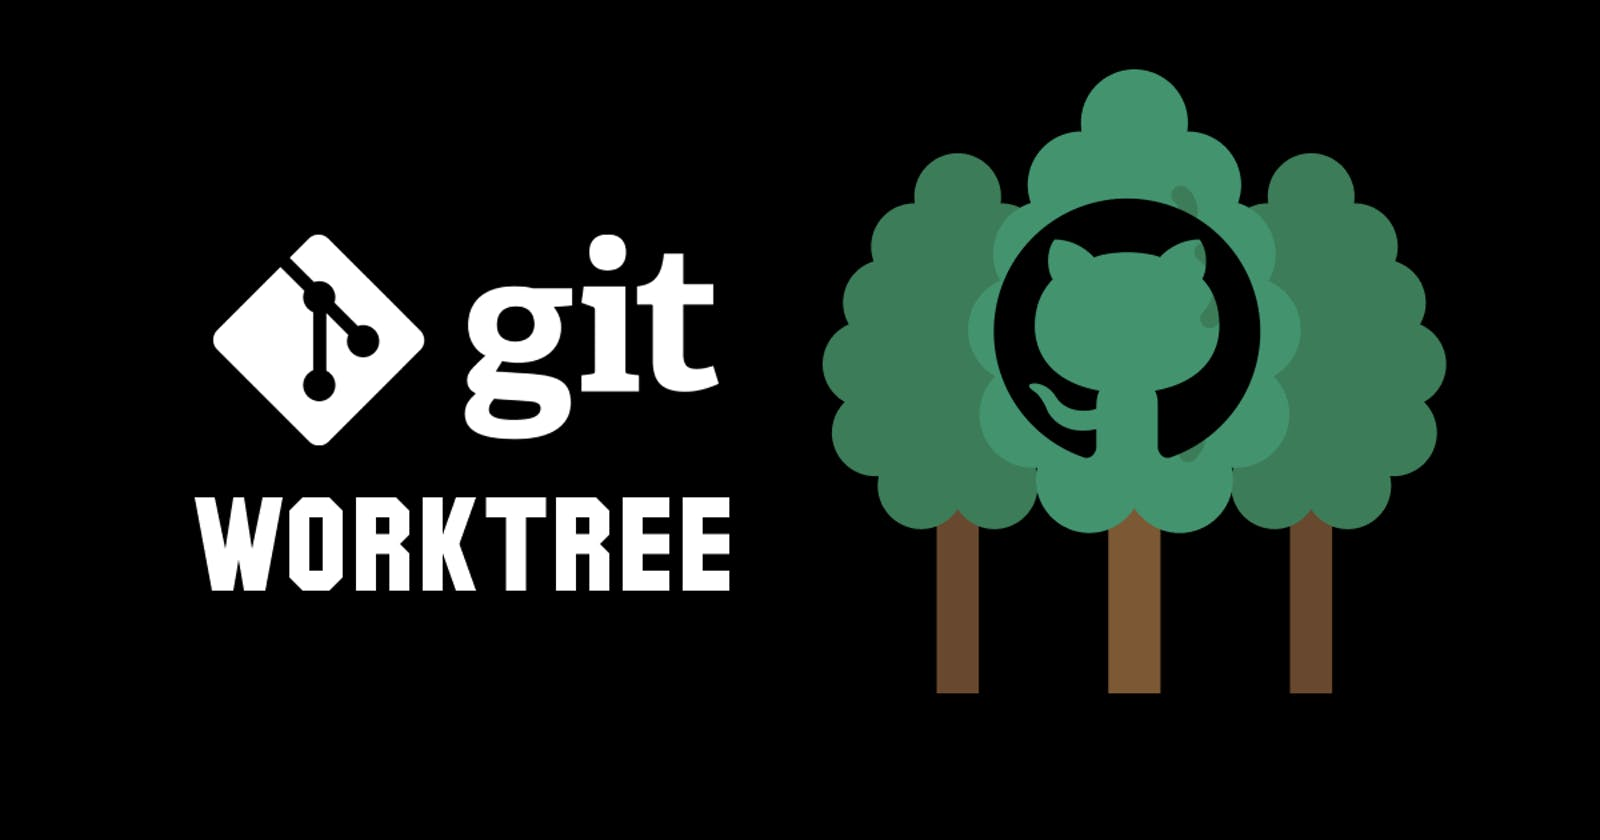 Practical Guide to Git Worktree